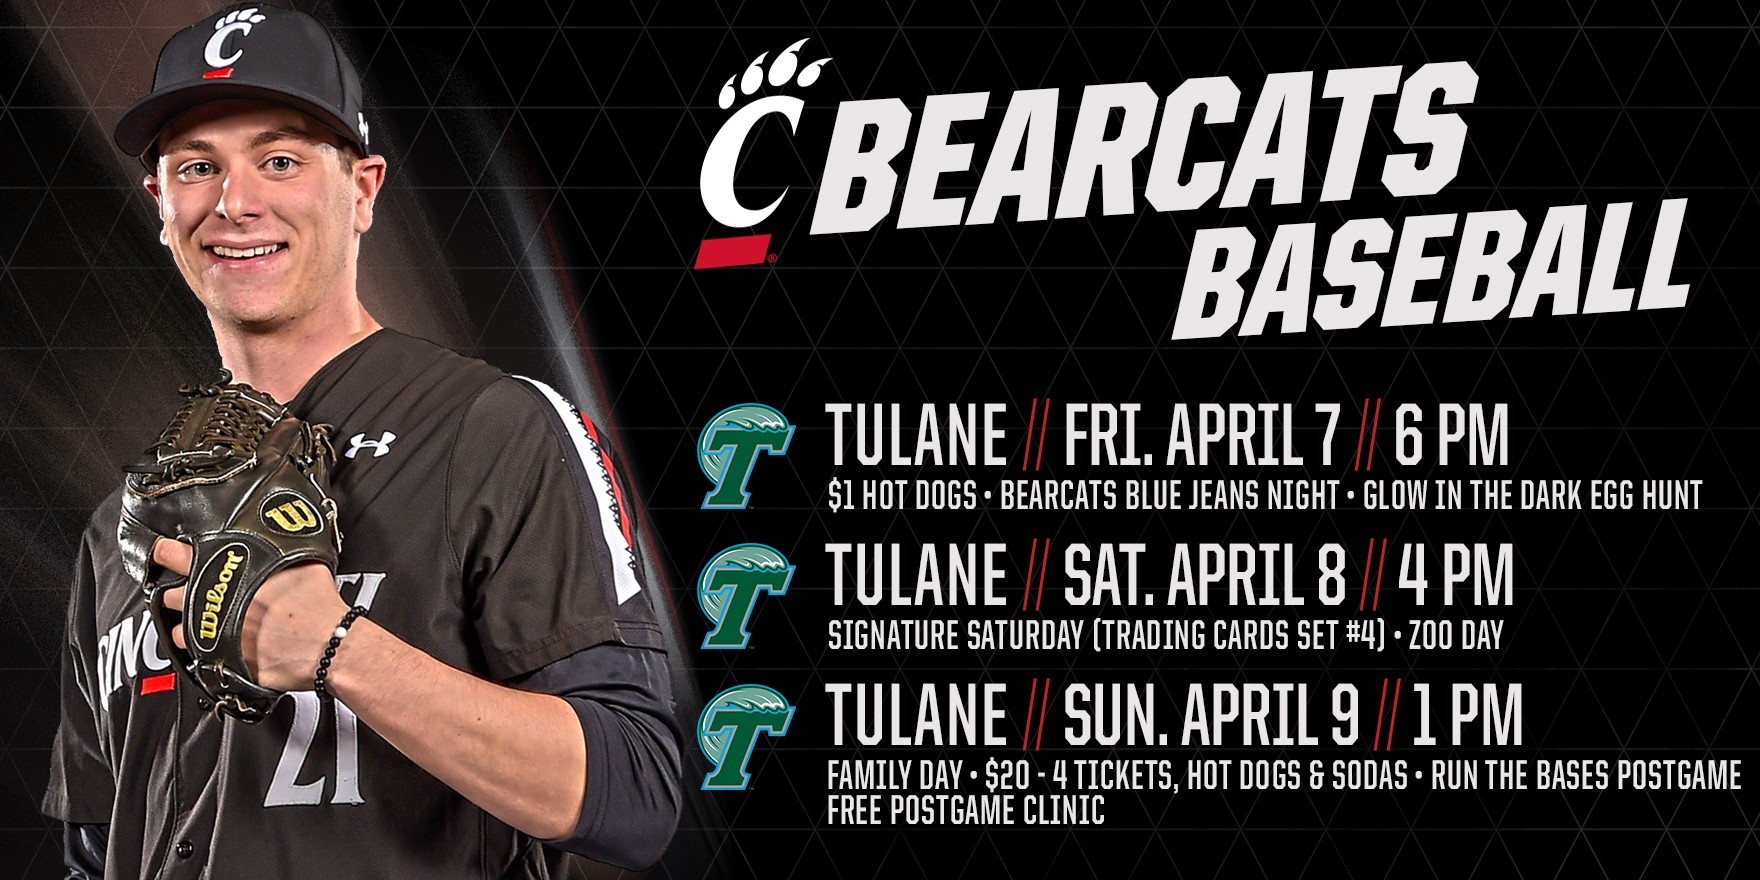 Baseball Welcomes Tulane For Weekend Series - University of